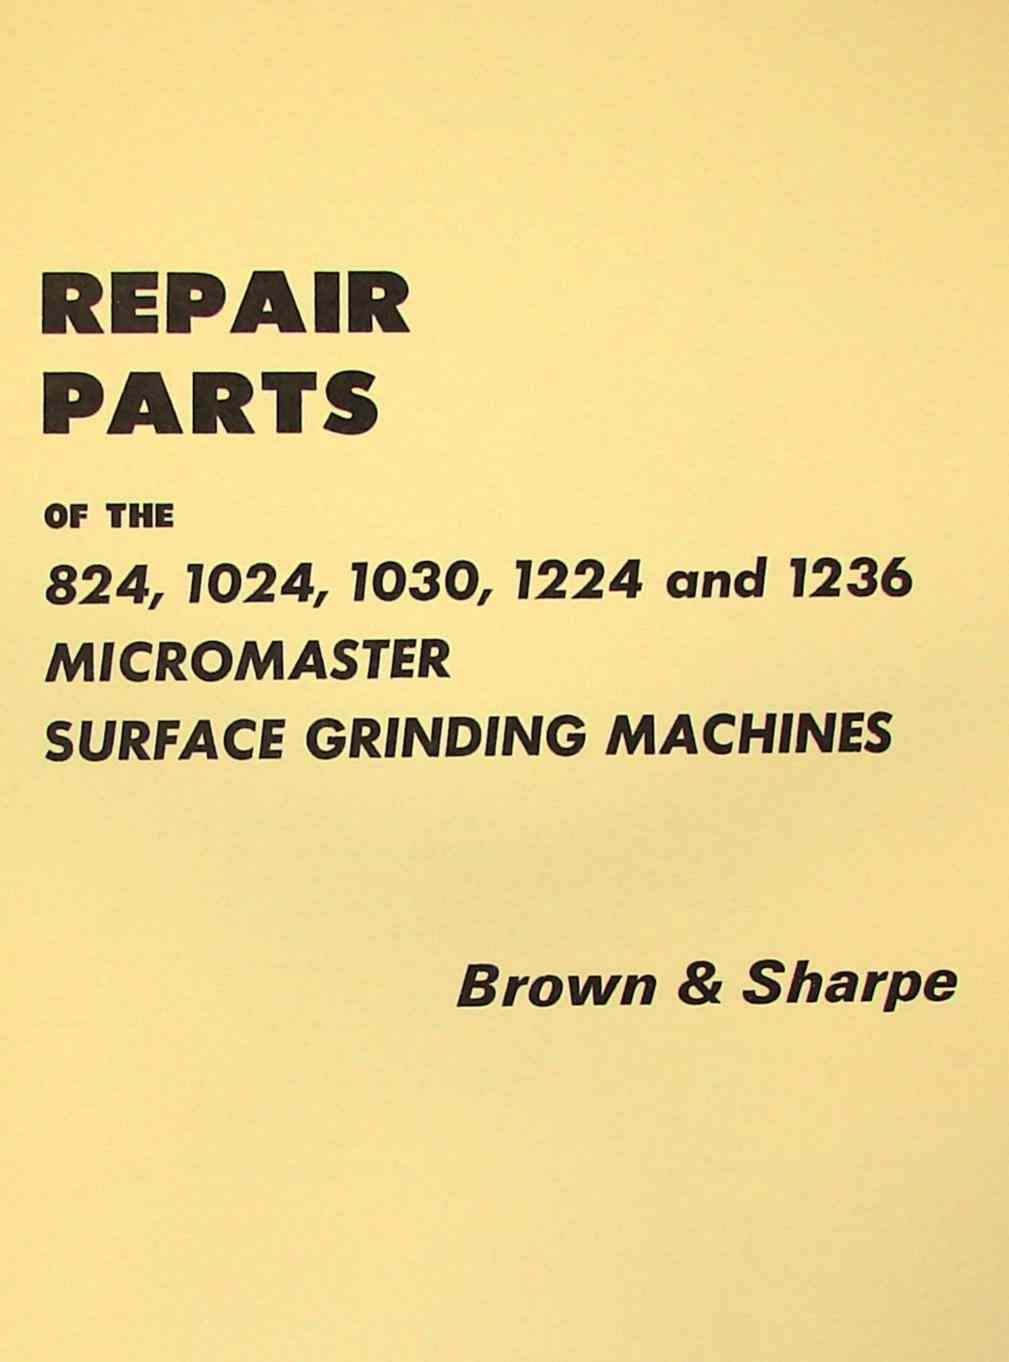 BROWN & SHARPE Micromaster Surface Grinders Parts Manual: Misc.:  Amazon.com: Books